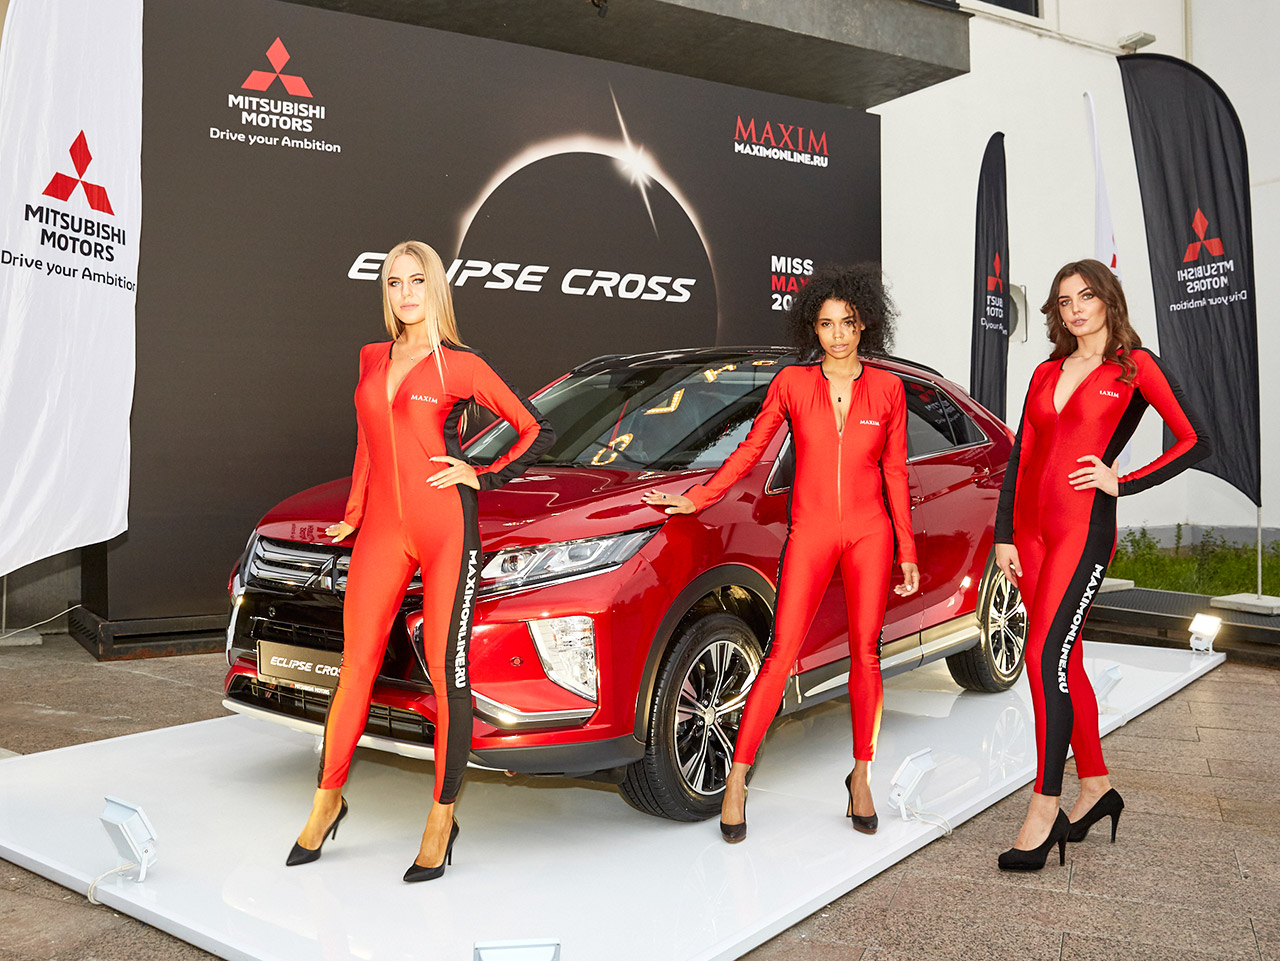 Eclipse Cross на финале конкурса Miss MAXIM 2018